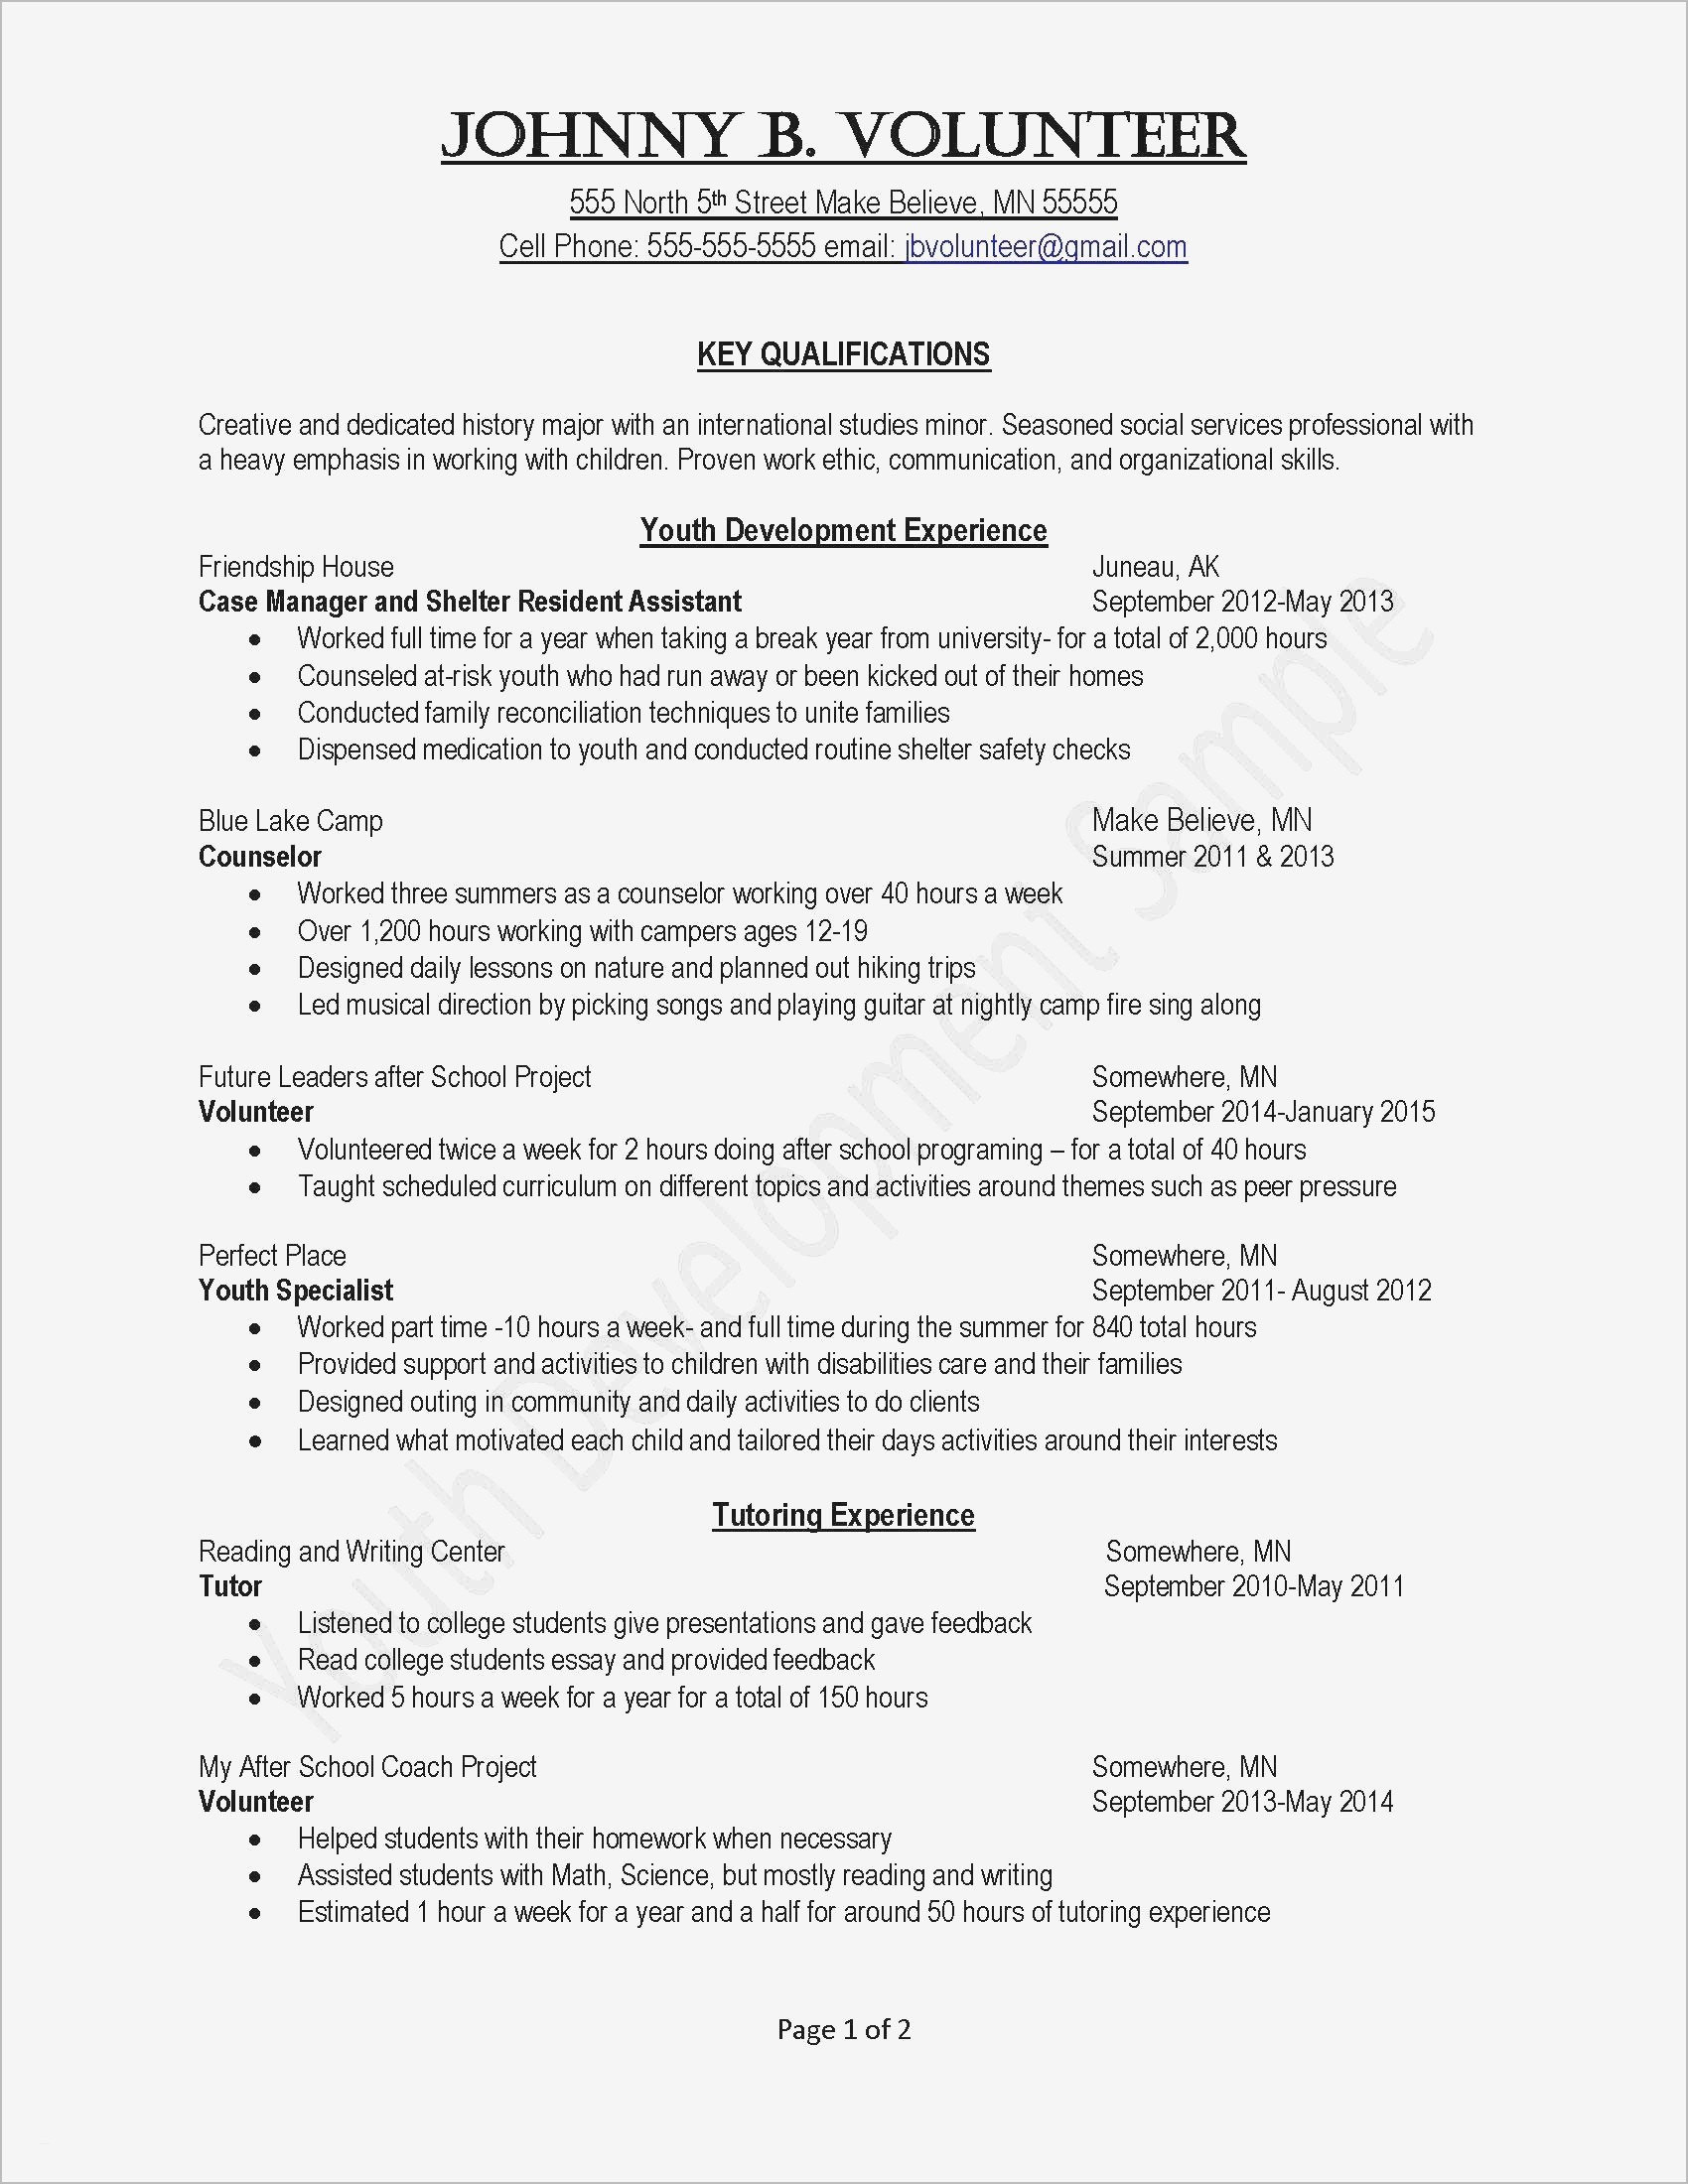 Coaching Resume Template - Template for Cover Letter and Resume Fresh Activities Resume